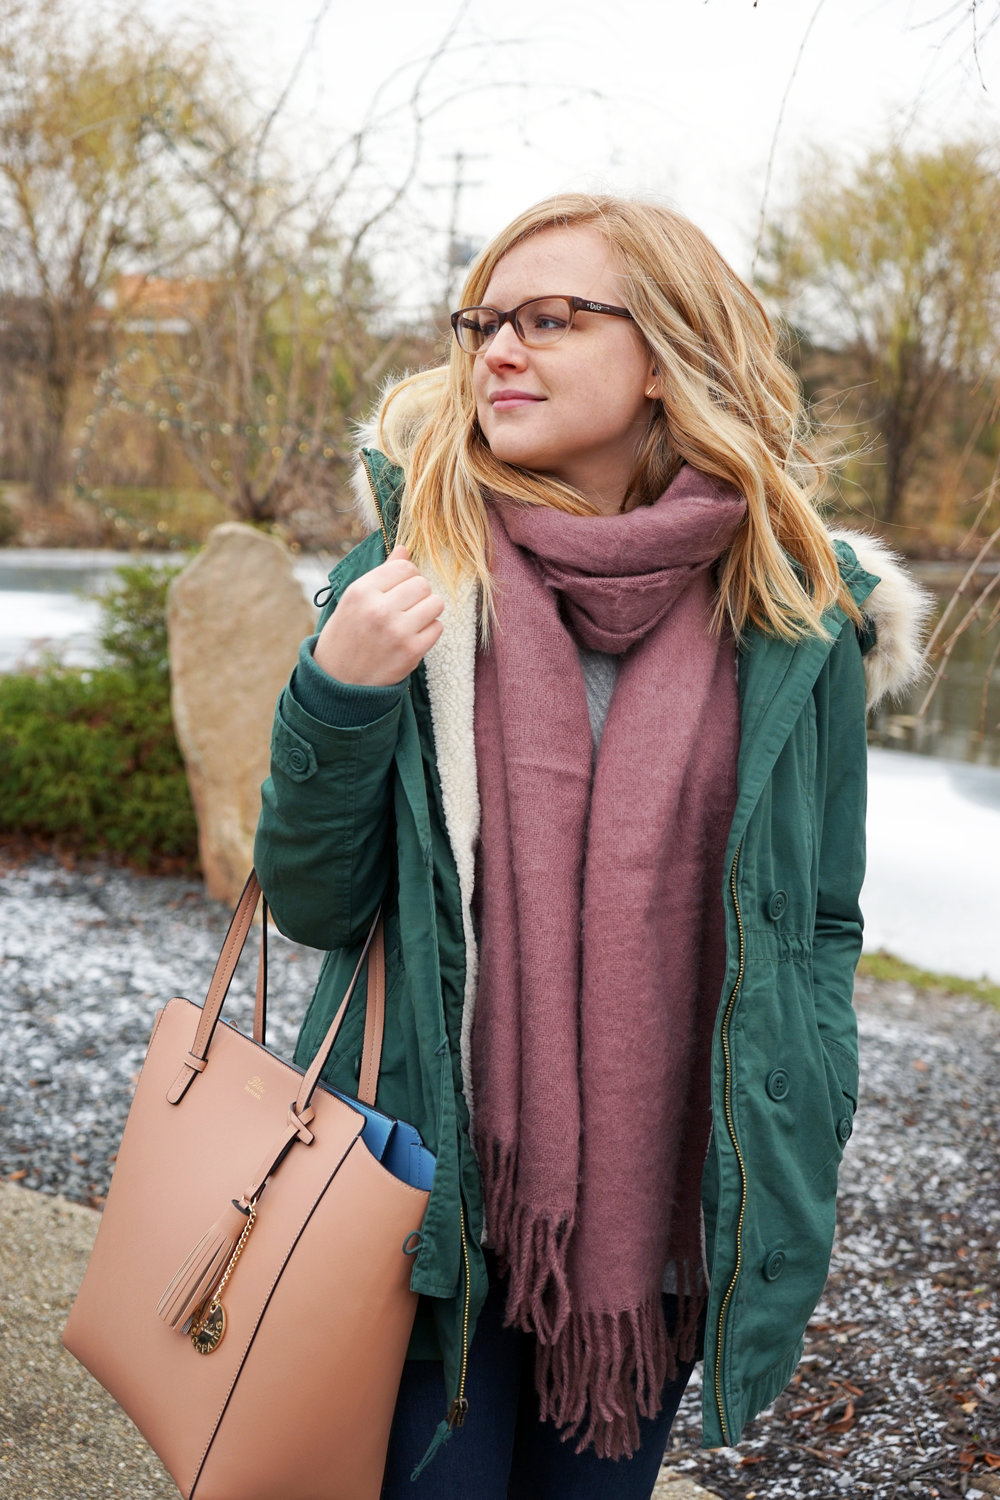 Maggie a la Mode - Asos Supersoft Long Woven Scarf Tassels Dusty Mauve/Pink, Gap 2-in-1 Hooded Parka Cucumber Peel, Paige Verdugo Skinny Jeans Reed, Schutz Elise Loafer, Blue Les Copains Tote